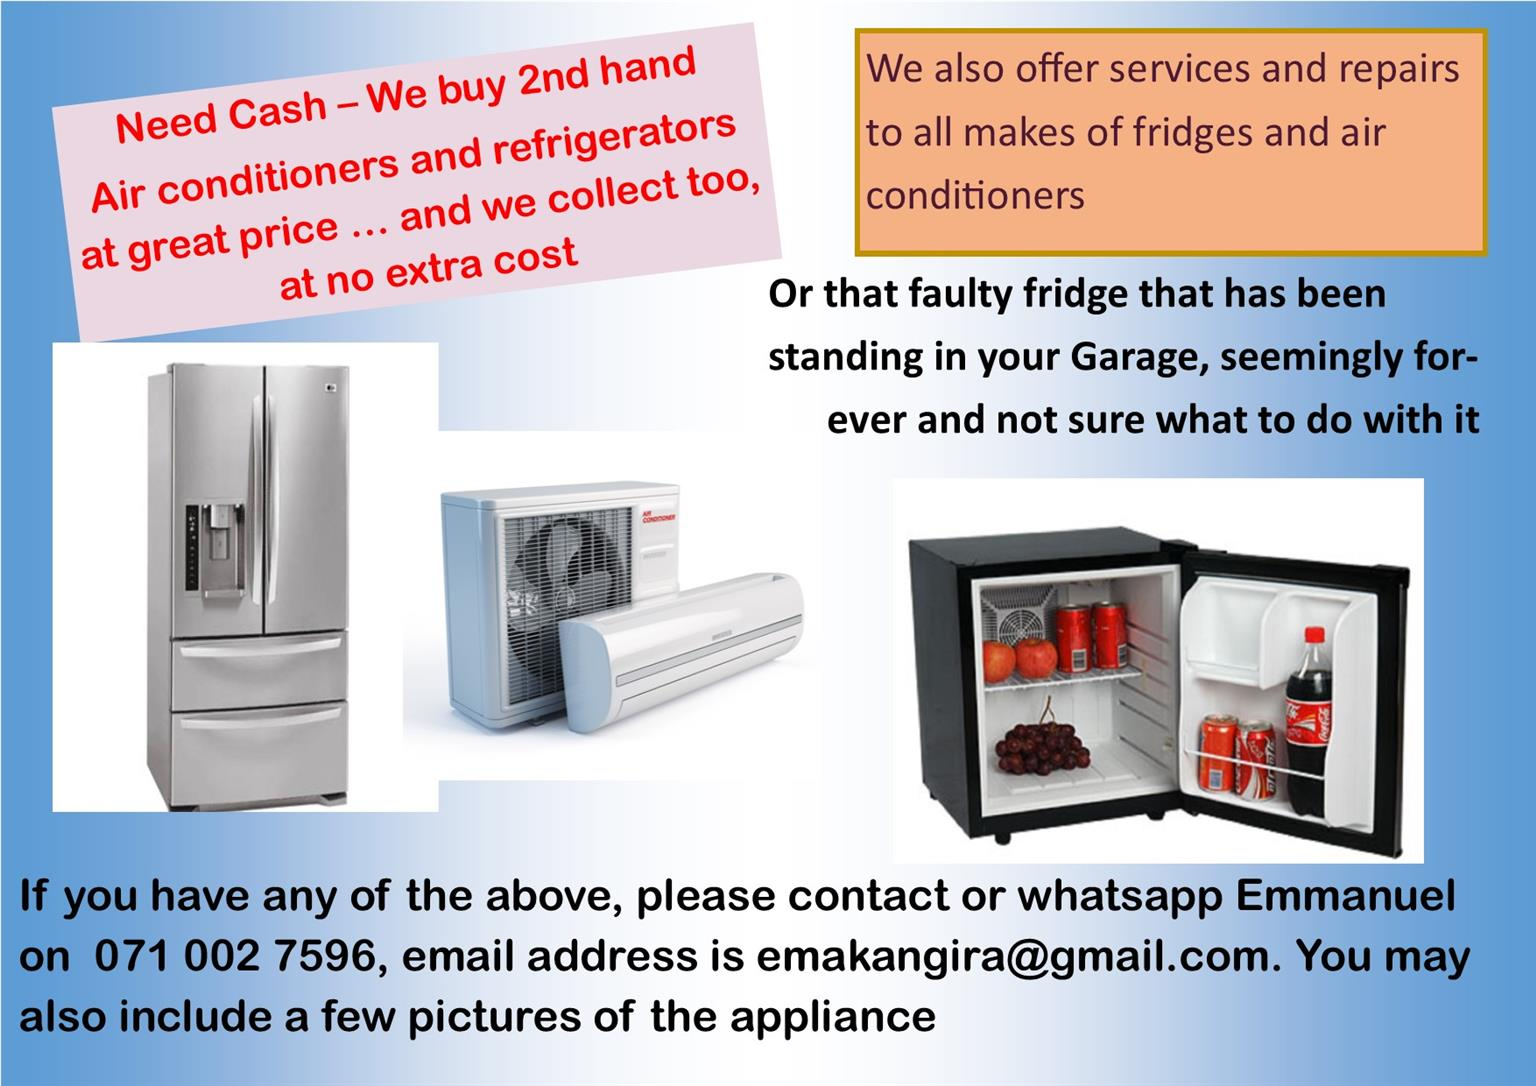 Need Some Cash This January - We buy 2nd Hand Fridges and Air Conditioners